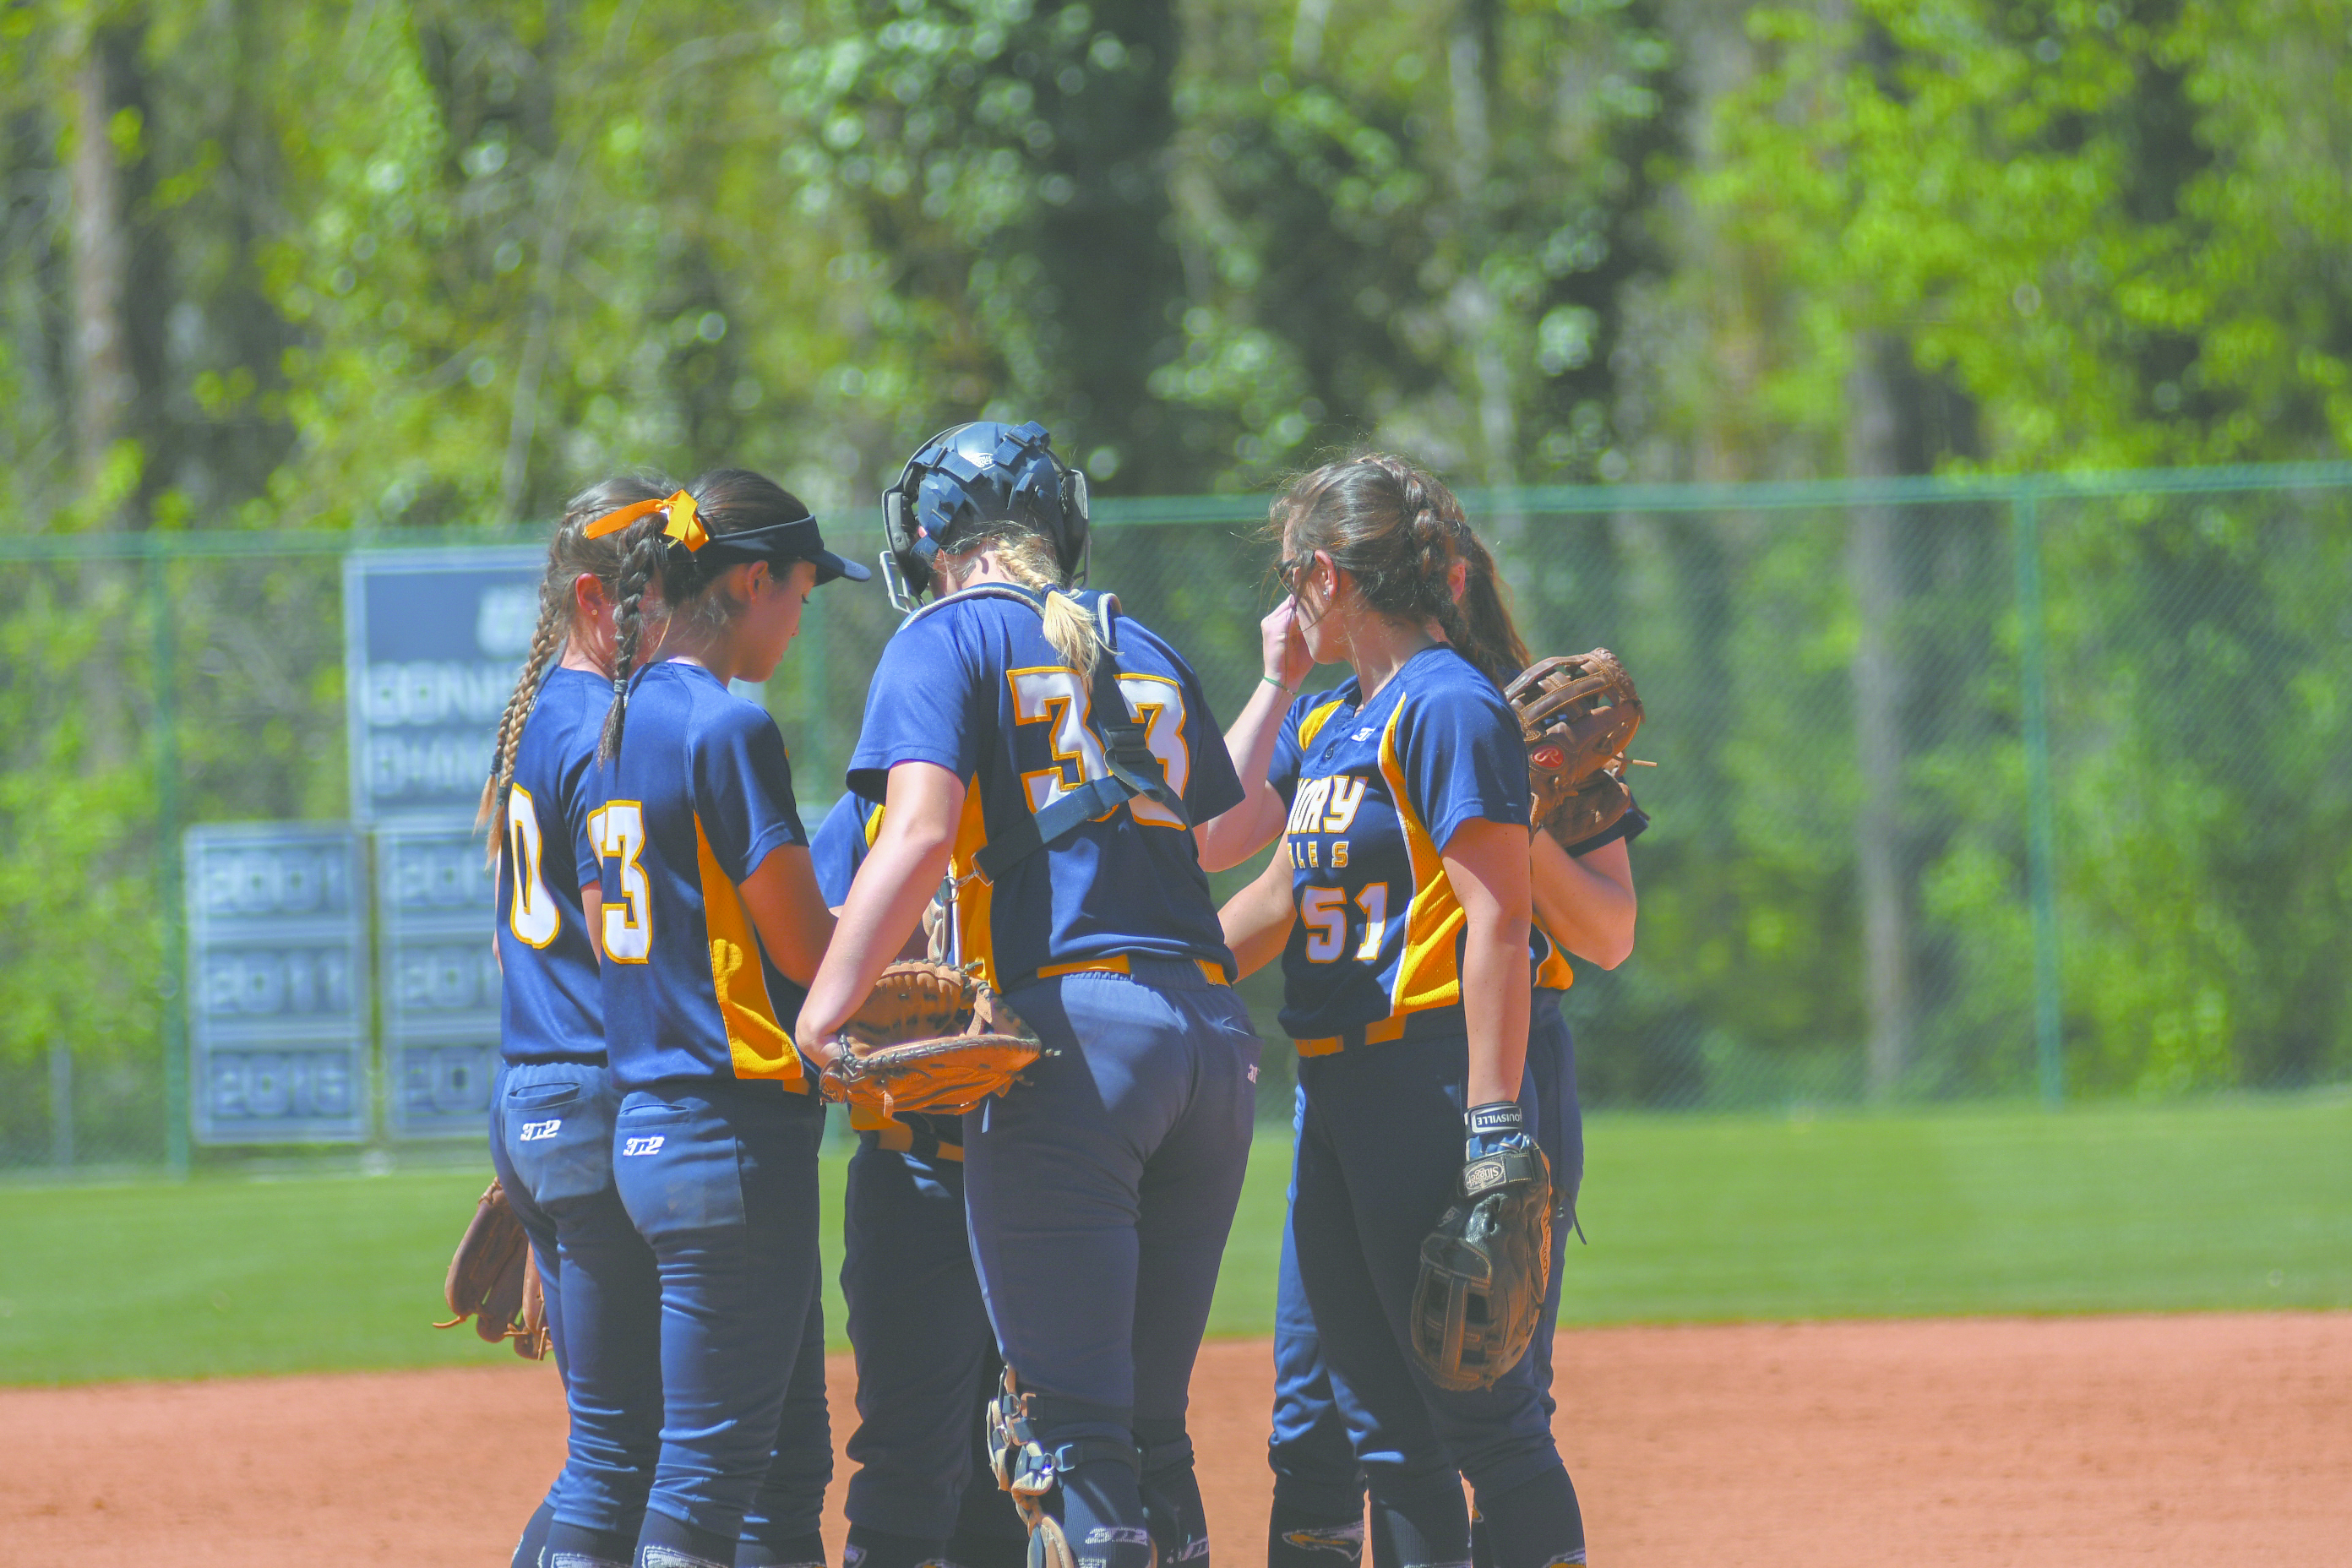 The team huddles around sophomore catcher Lana Herrmann for a quick conference. Gemy Sethaputra/Senior Staff.